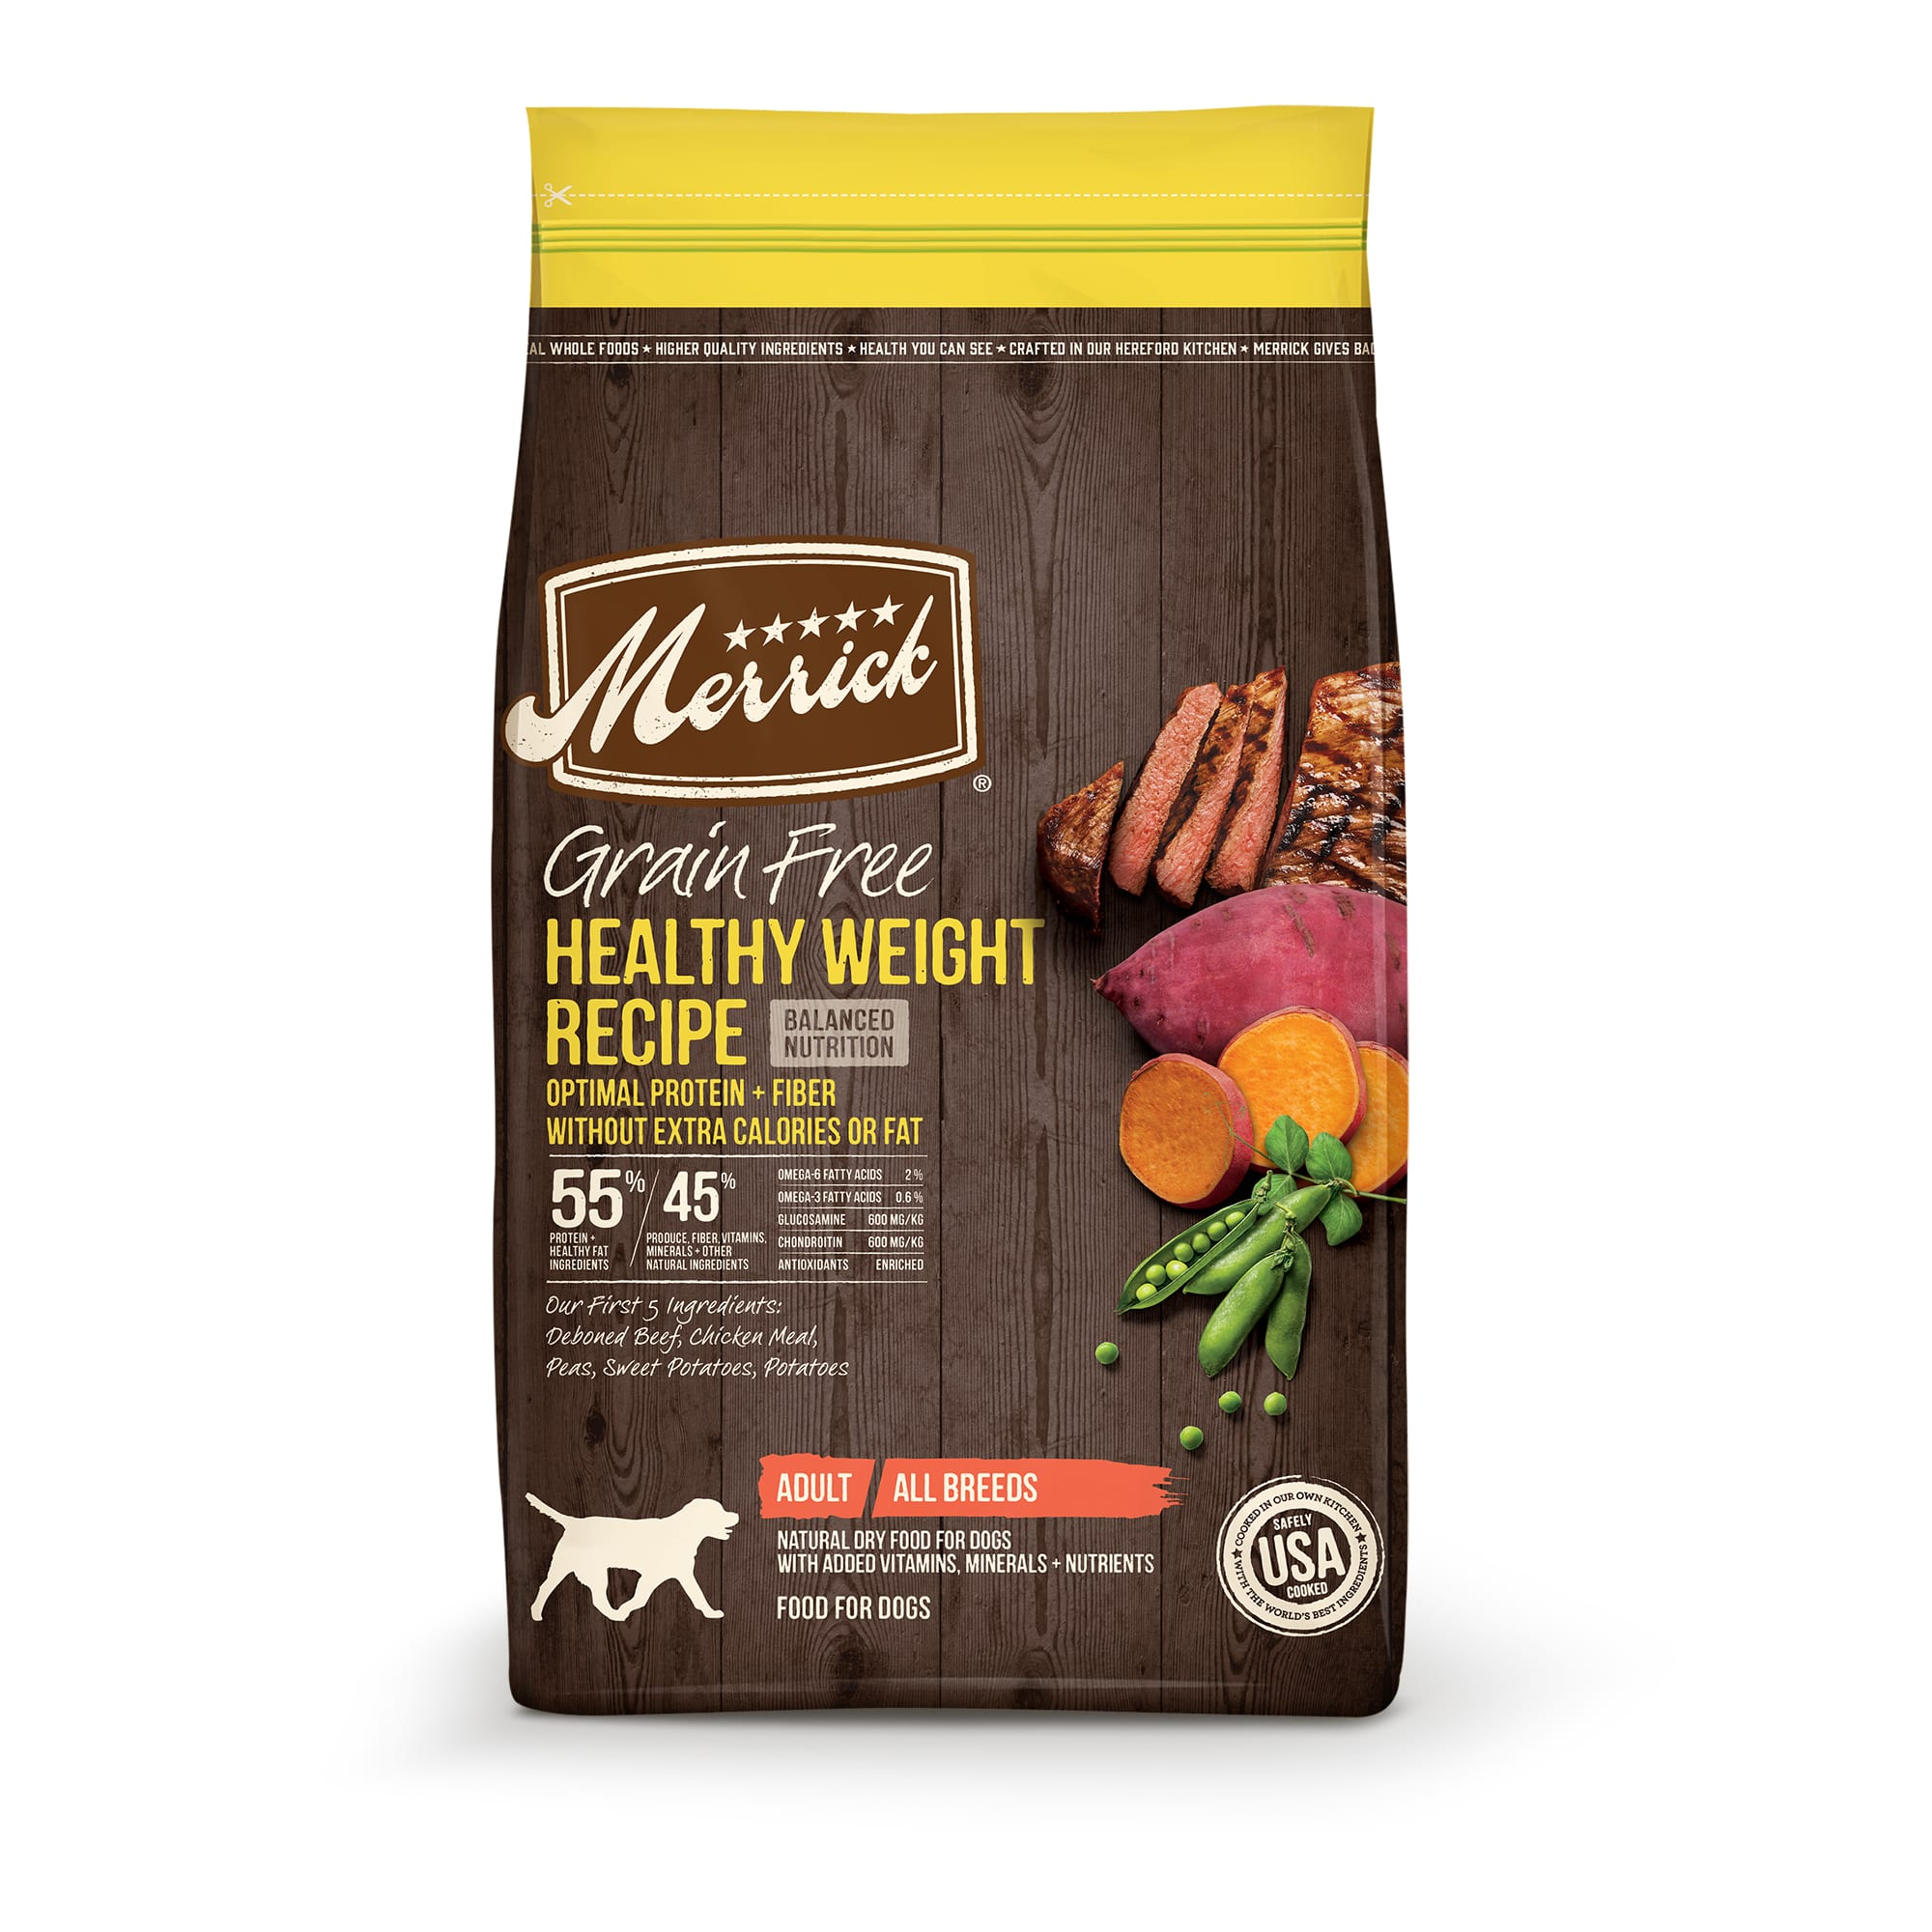 Merrick Grain Free Healthy Weight Beef Recipe Dry Dog Food, 4 lbs.